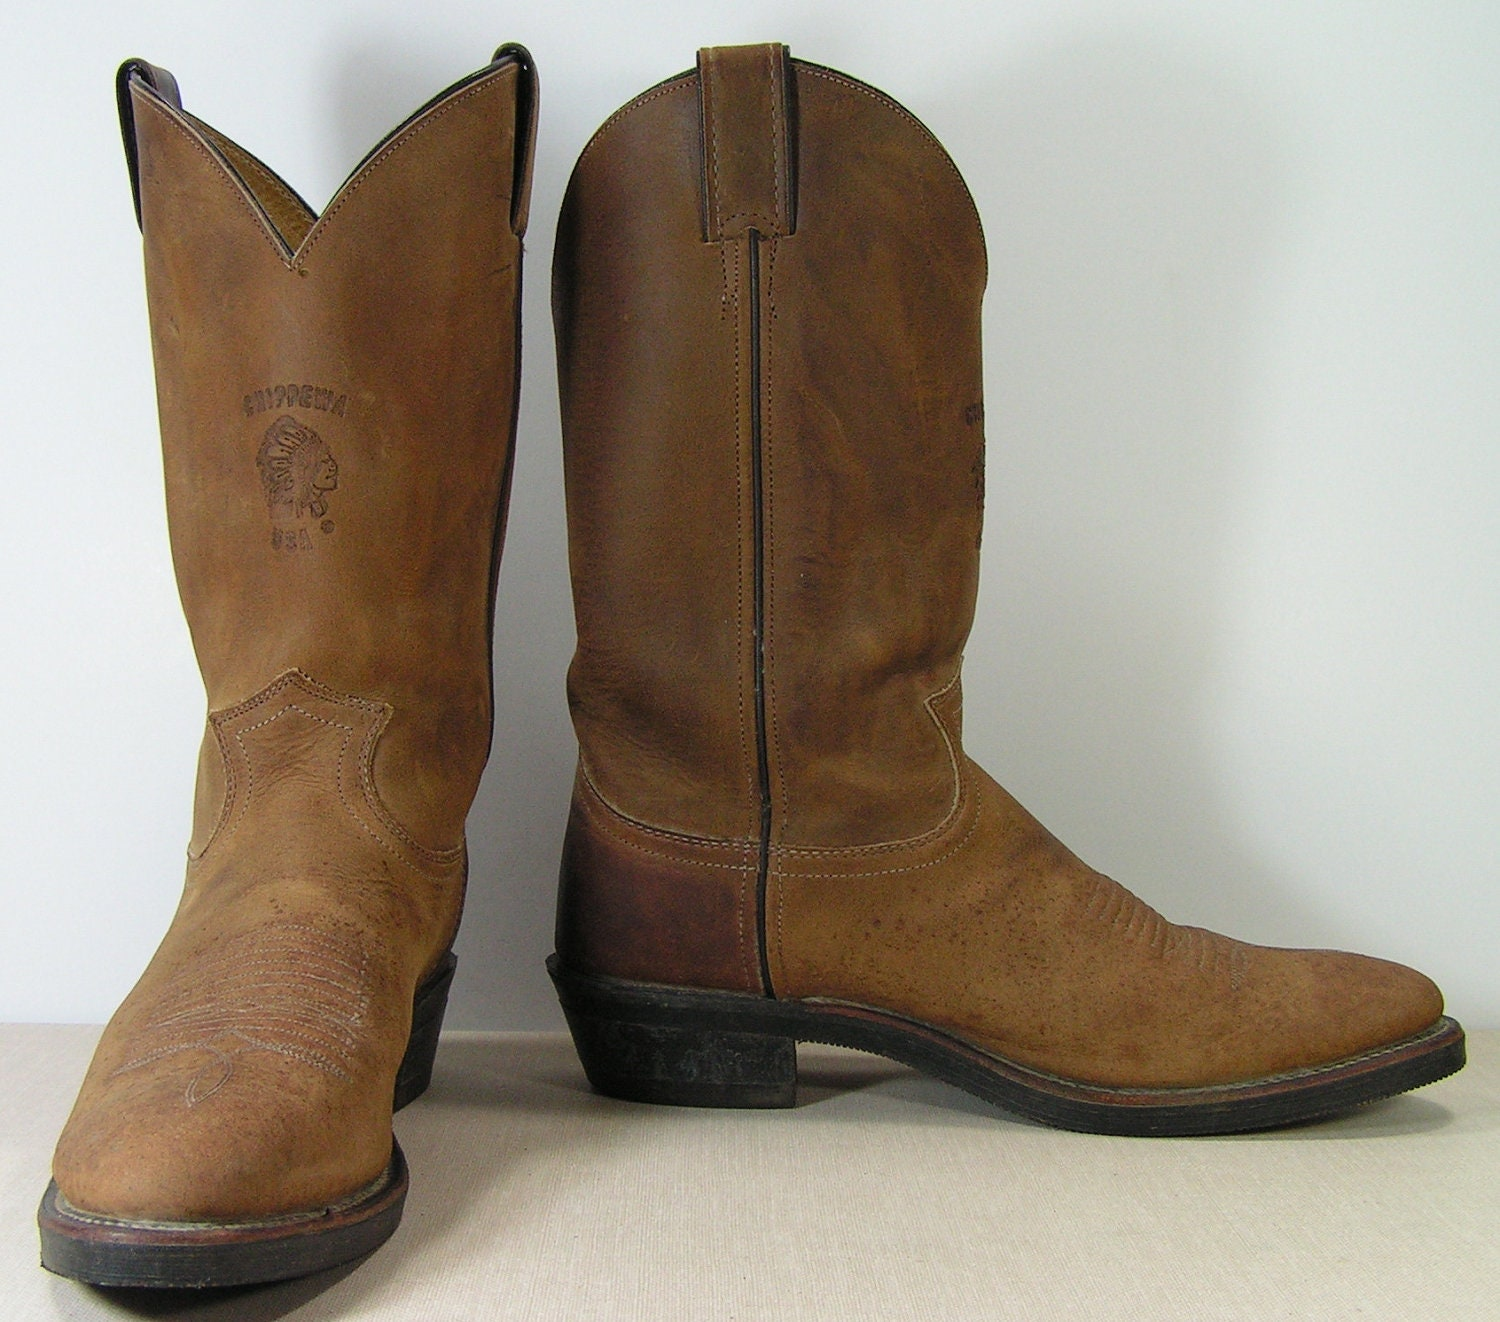 chippewa cowboy boots mens 9 5 b brown distressed leather